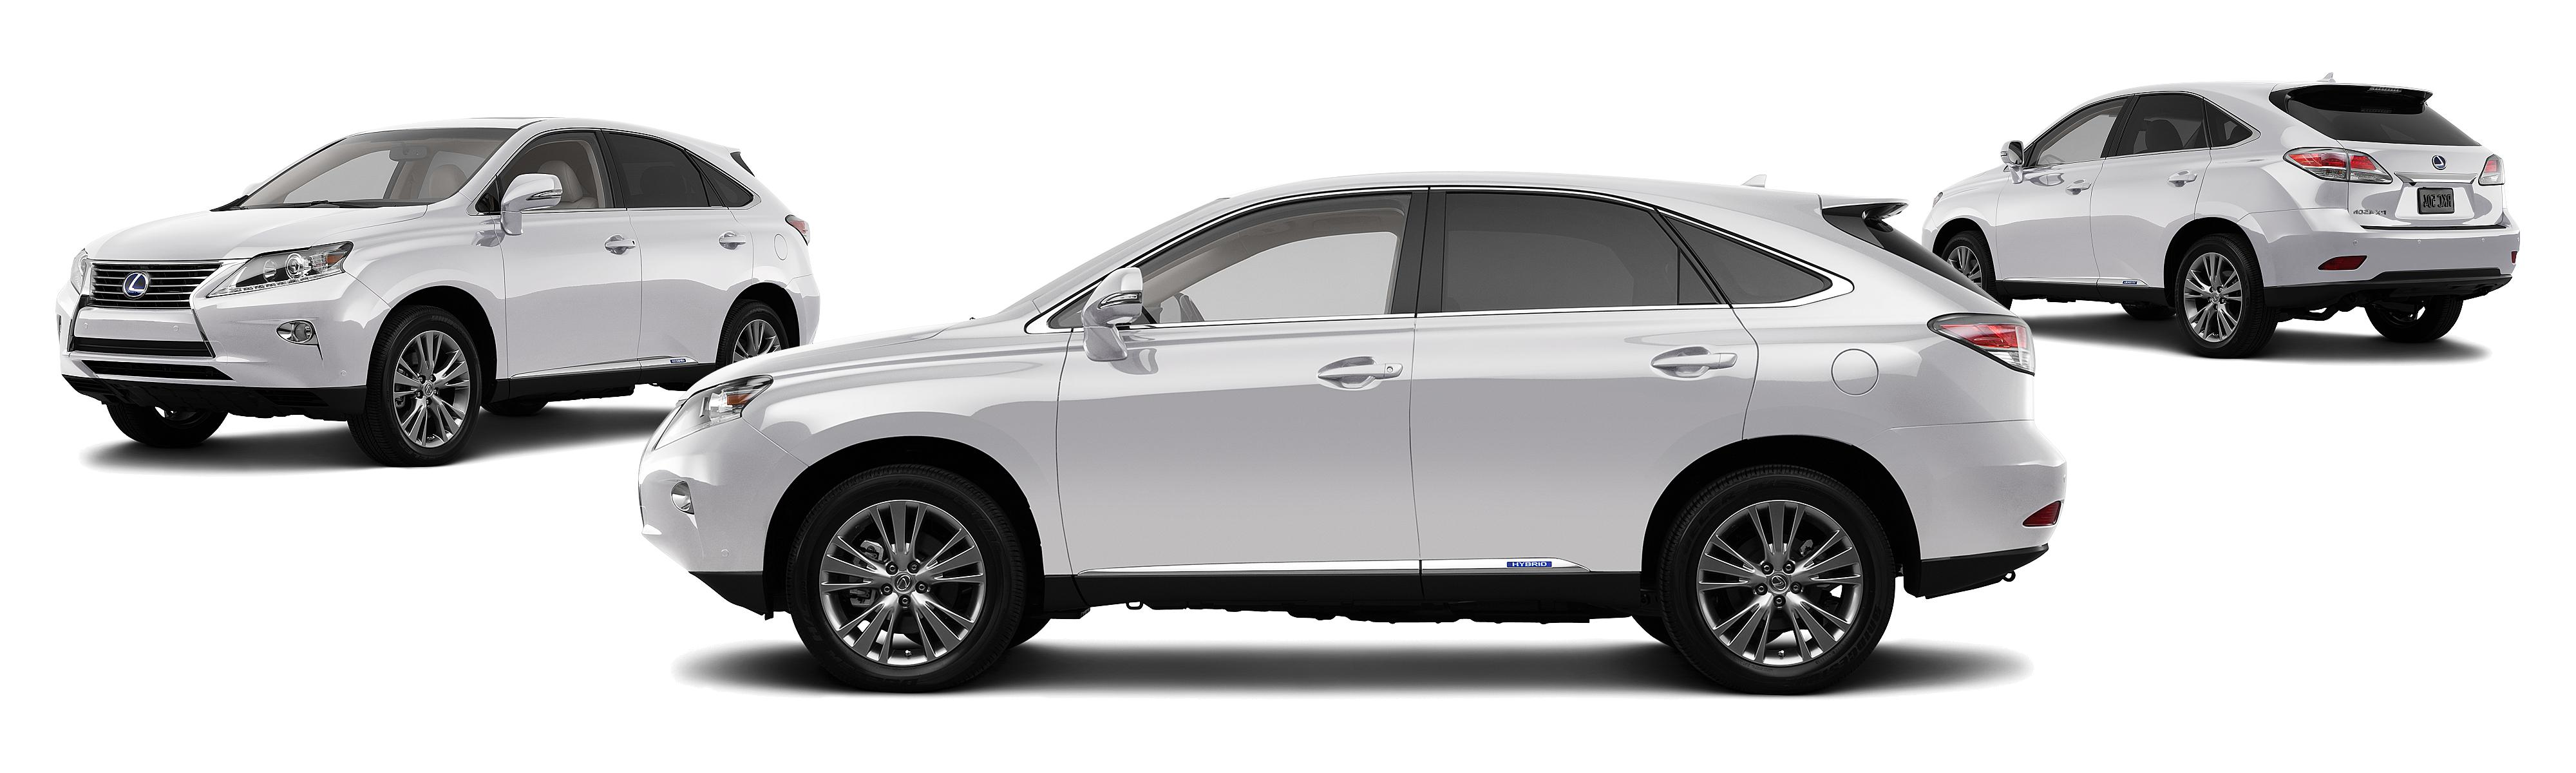 composite research groovecar lexus obsidian large suv rx